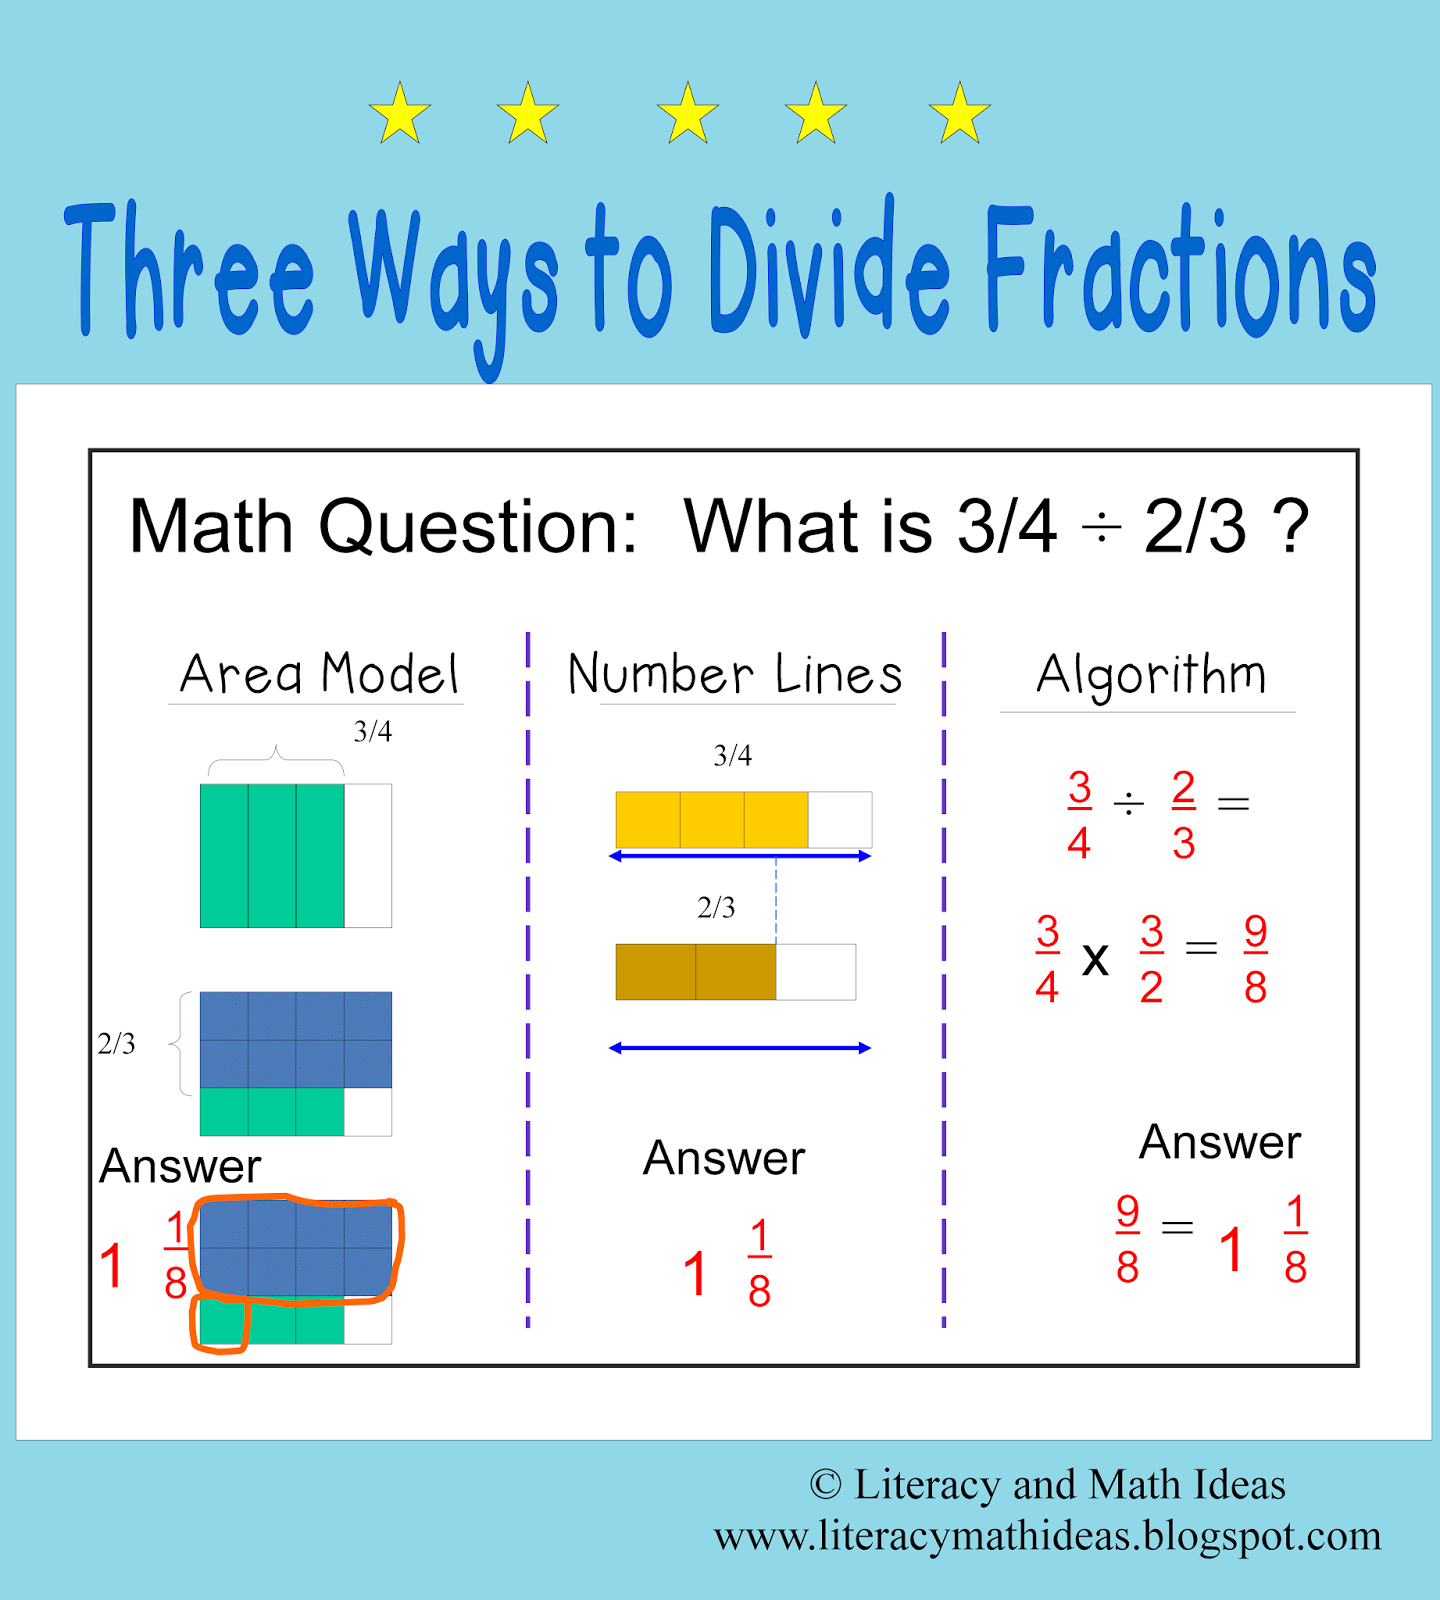 Three Ways To Divide Fractions